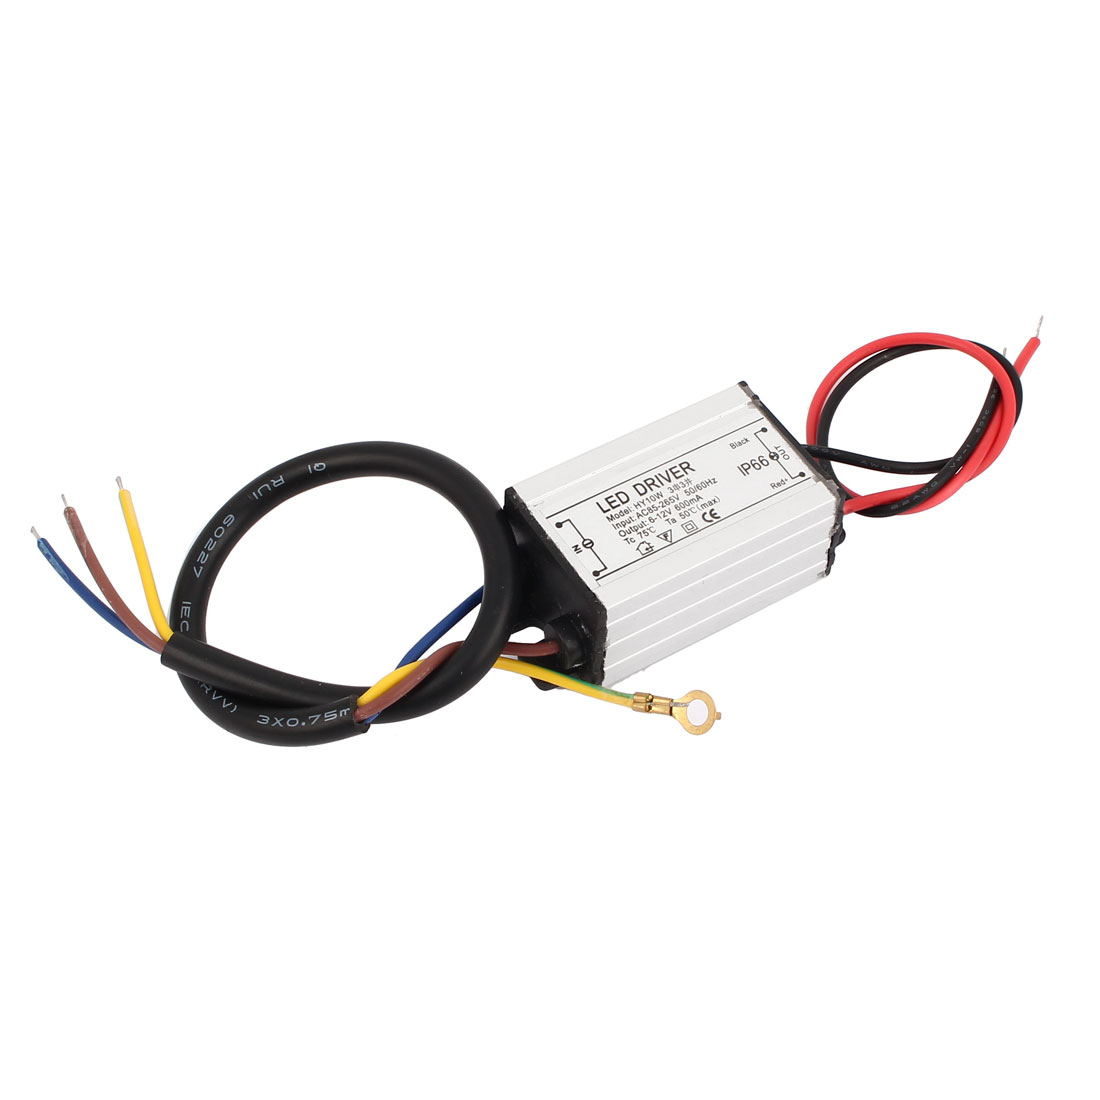 AC85-265V to DC6-12V 10W Transformer Waterproof LED Driver Power Supply